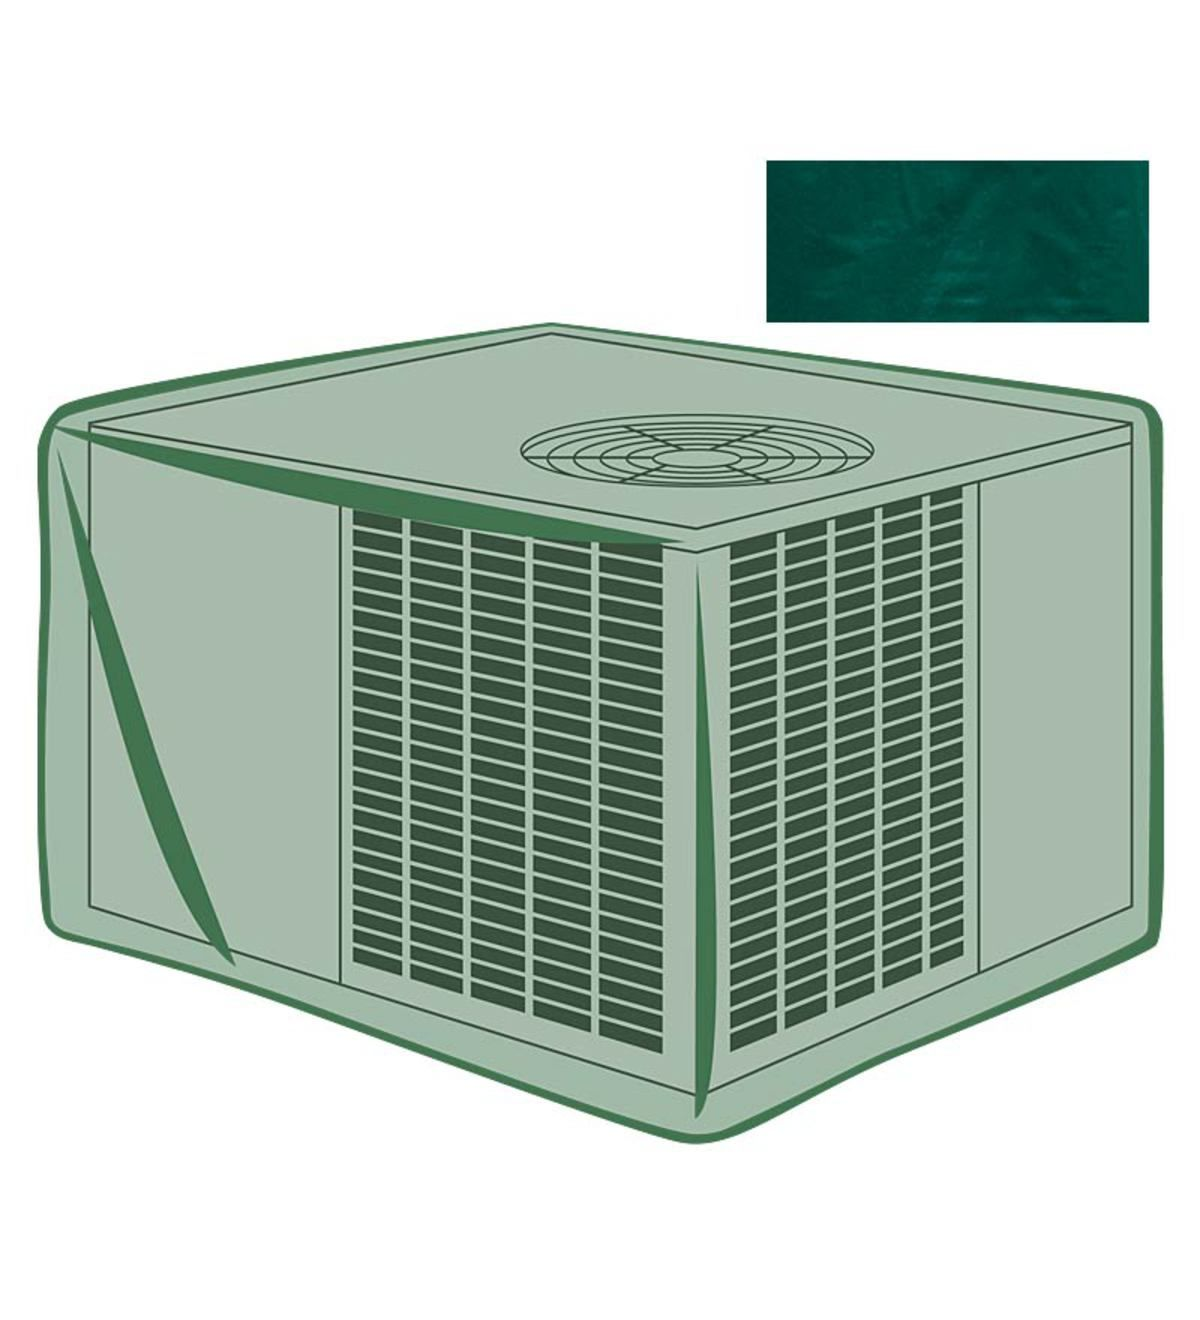 Our allweather air conditioner cover will help keep your